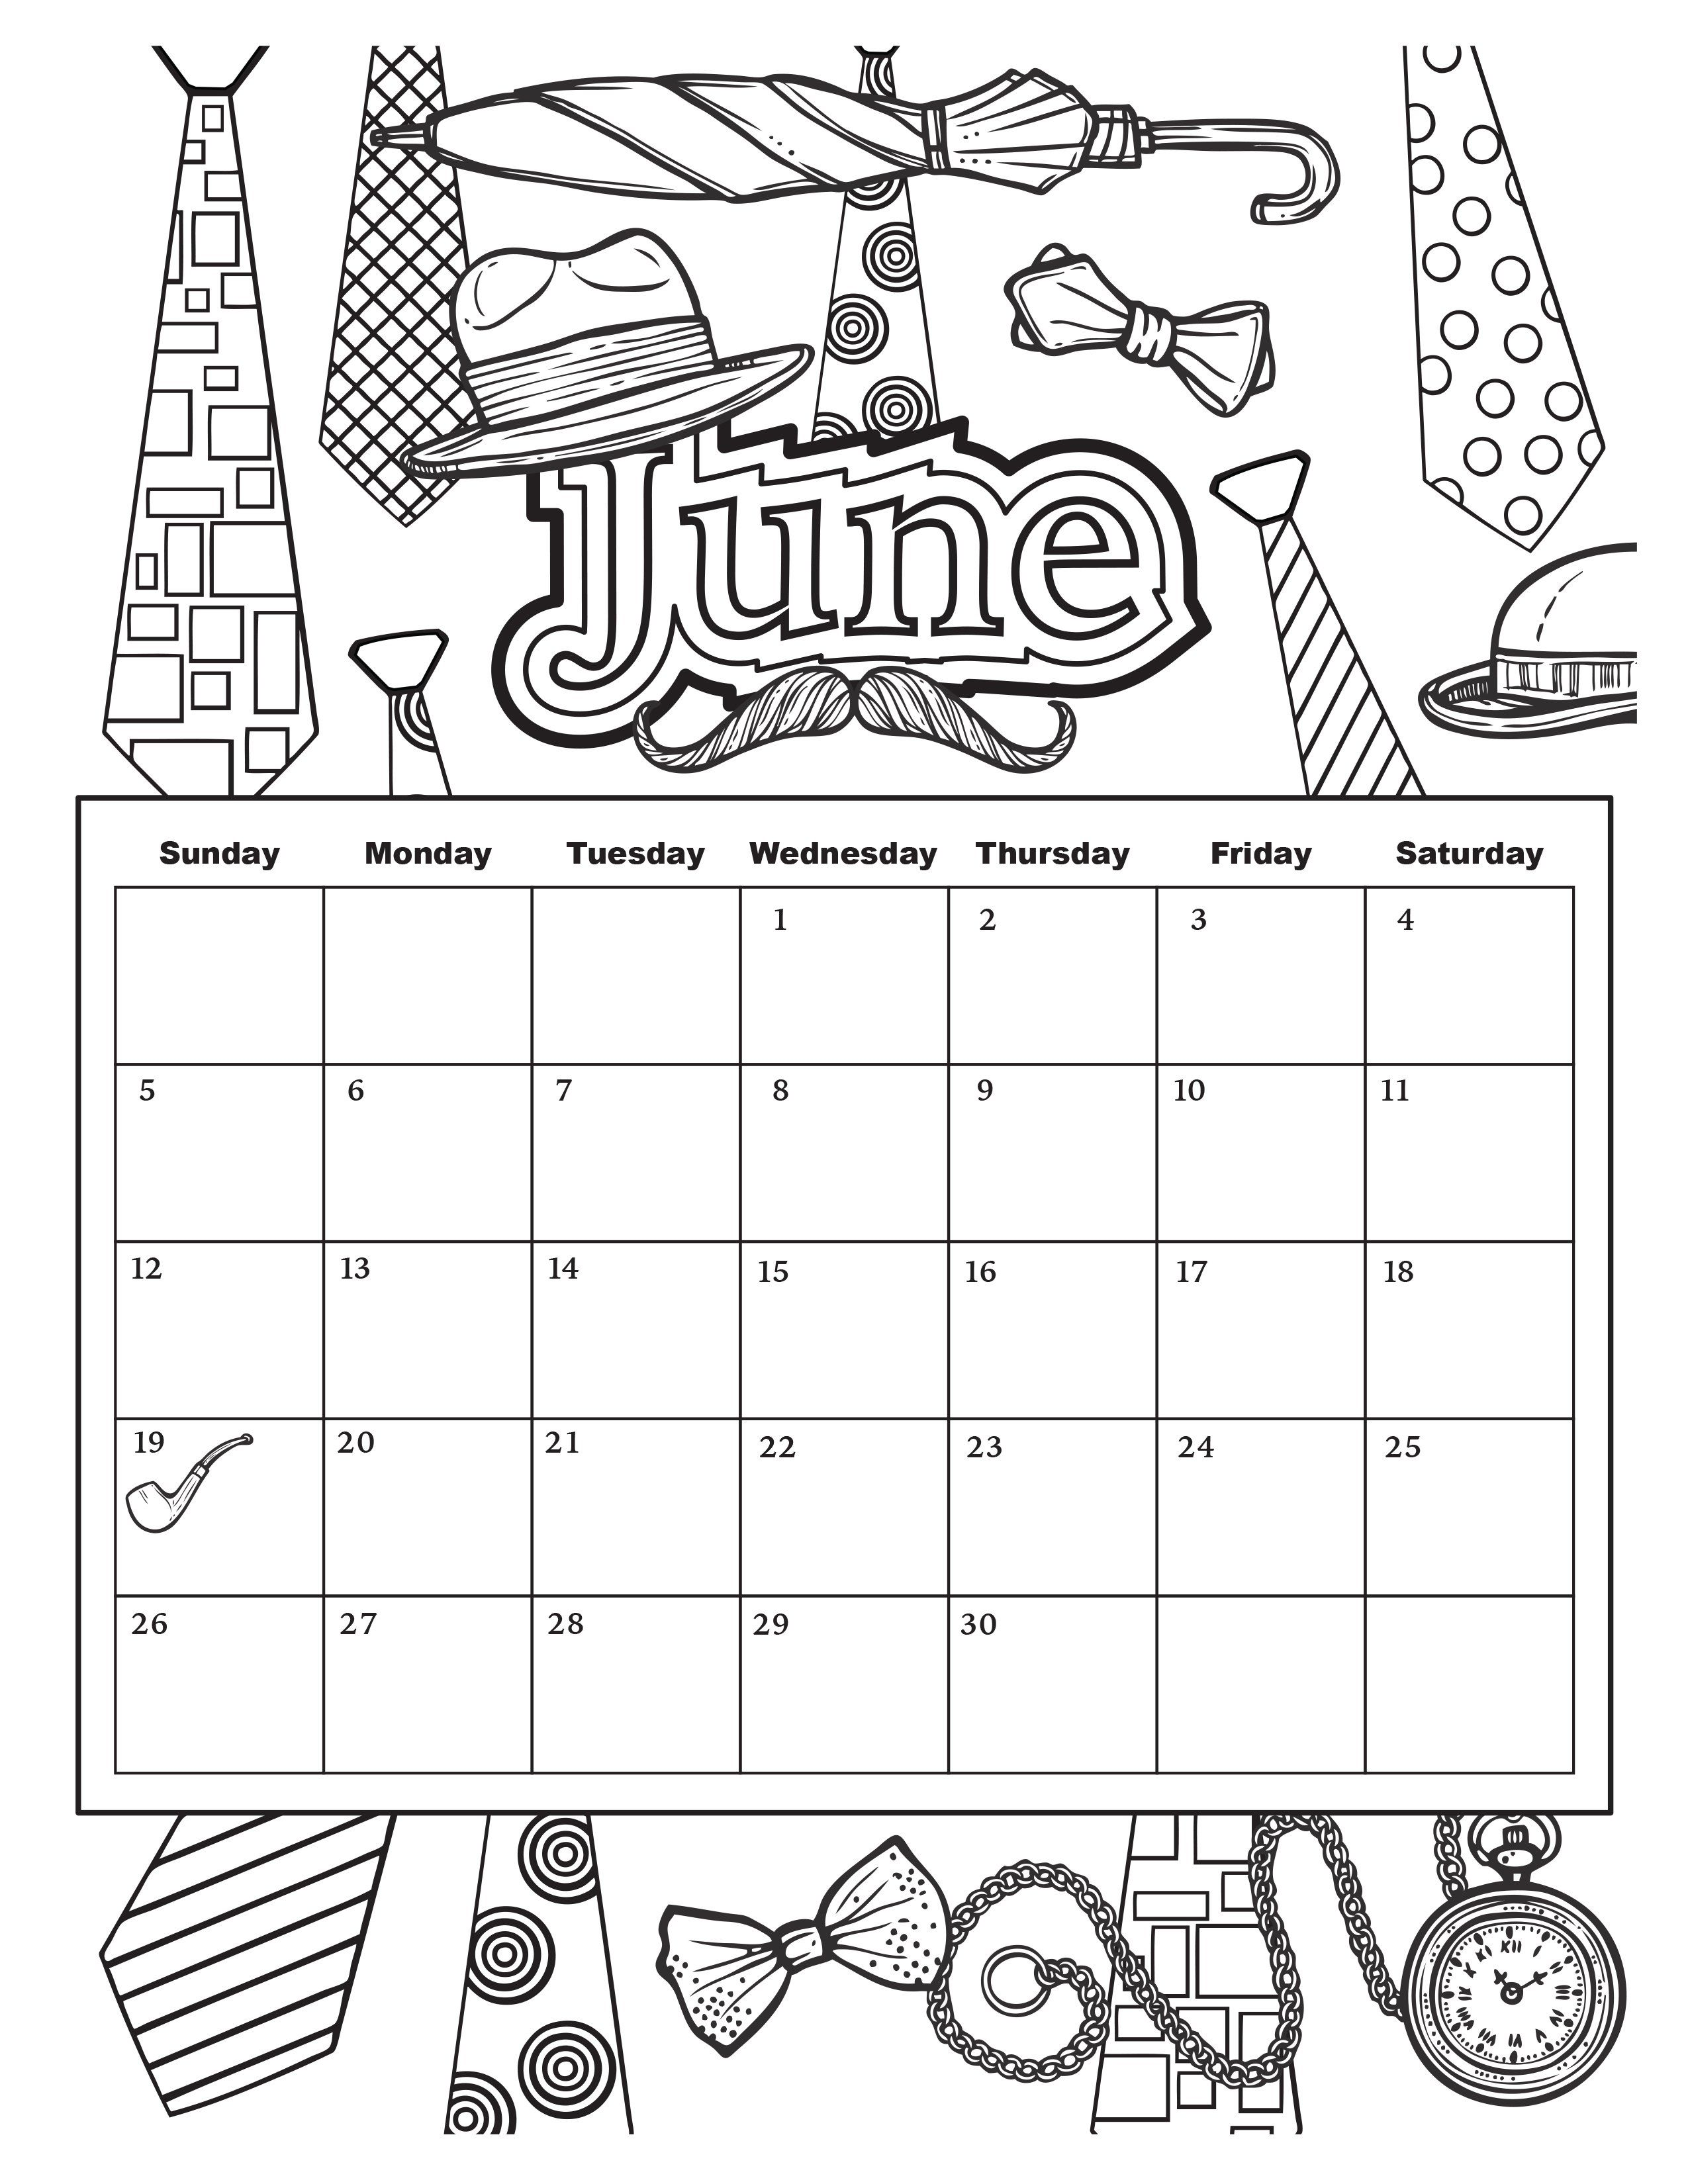 Free coloring pages for june - June Jpg 2550 3300